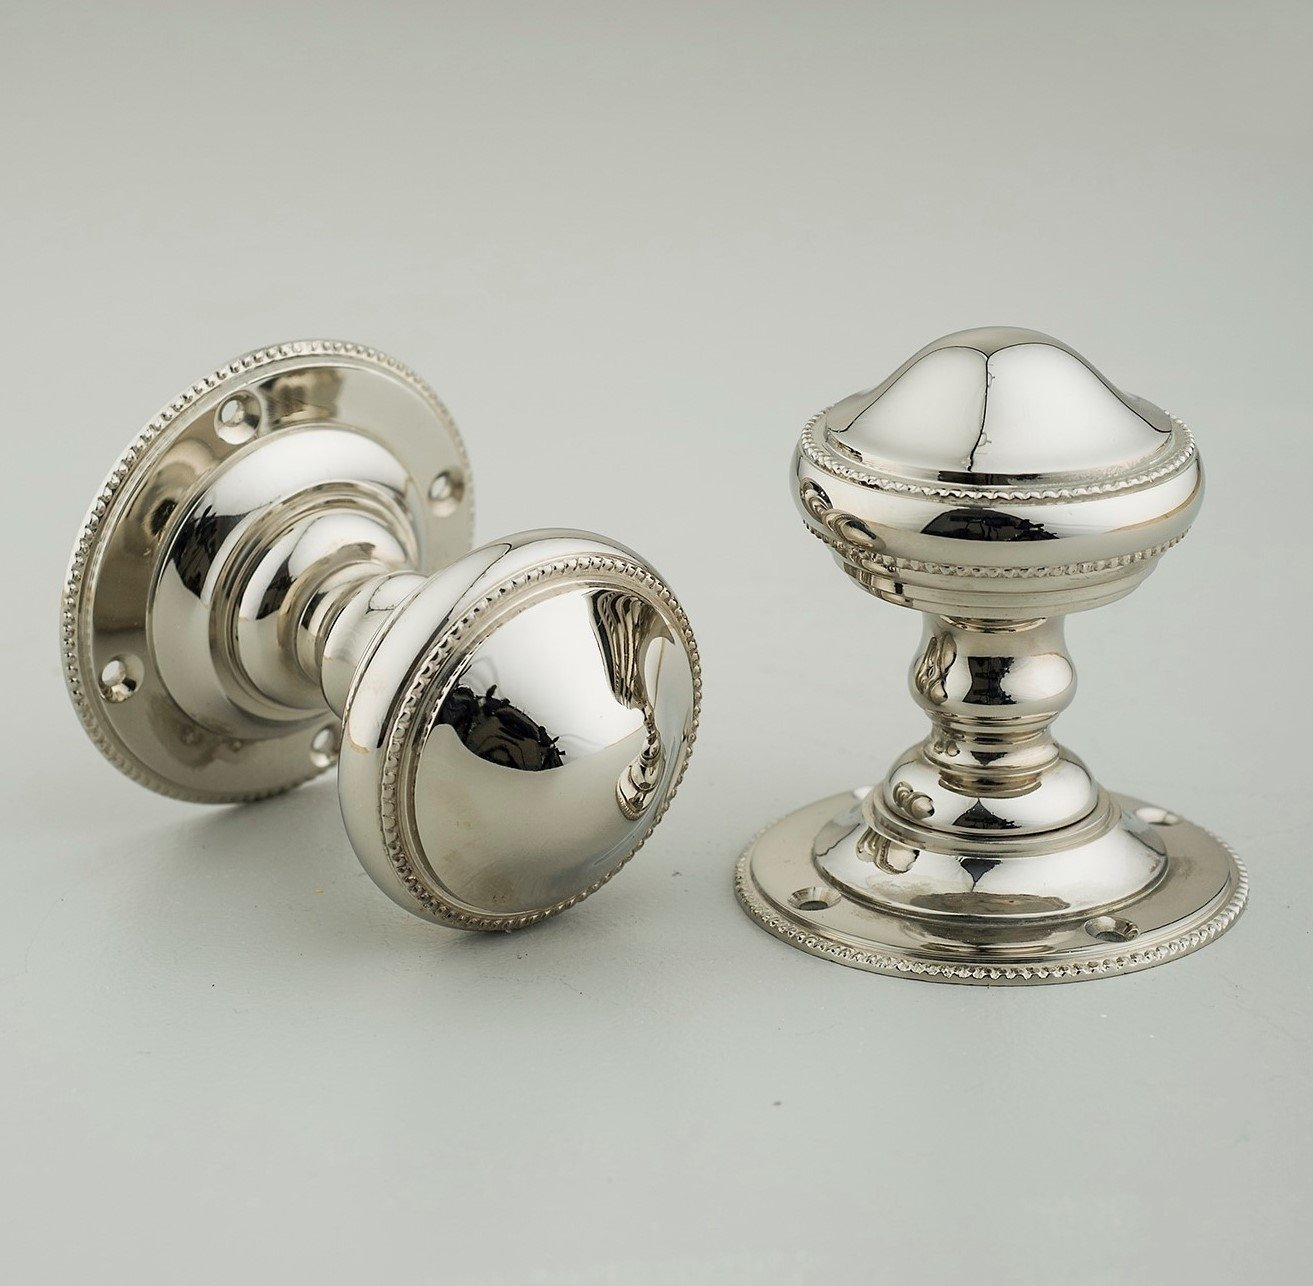 Beaded Edge Regency Door Knobs (Pair)